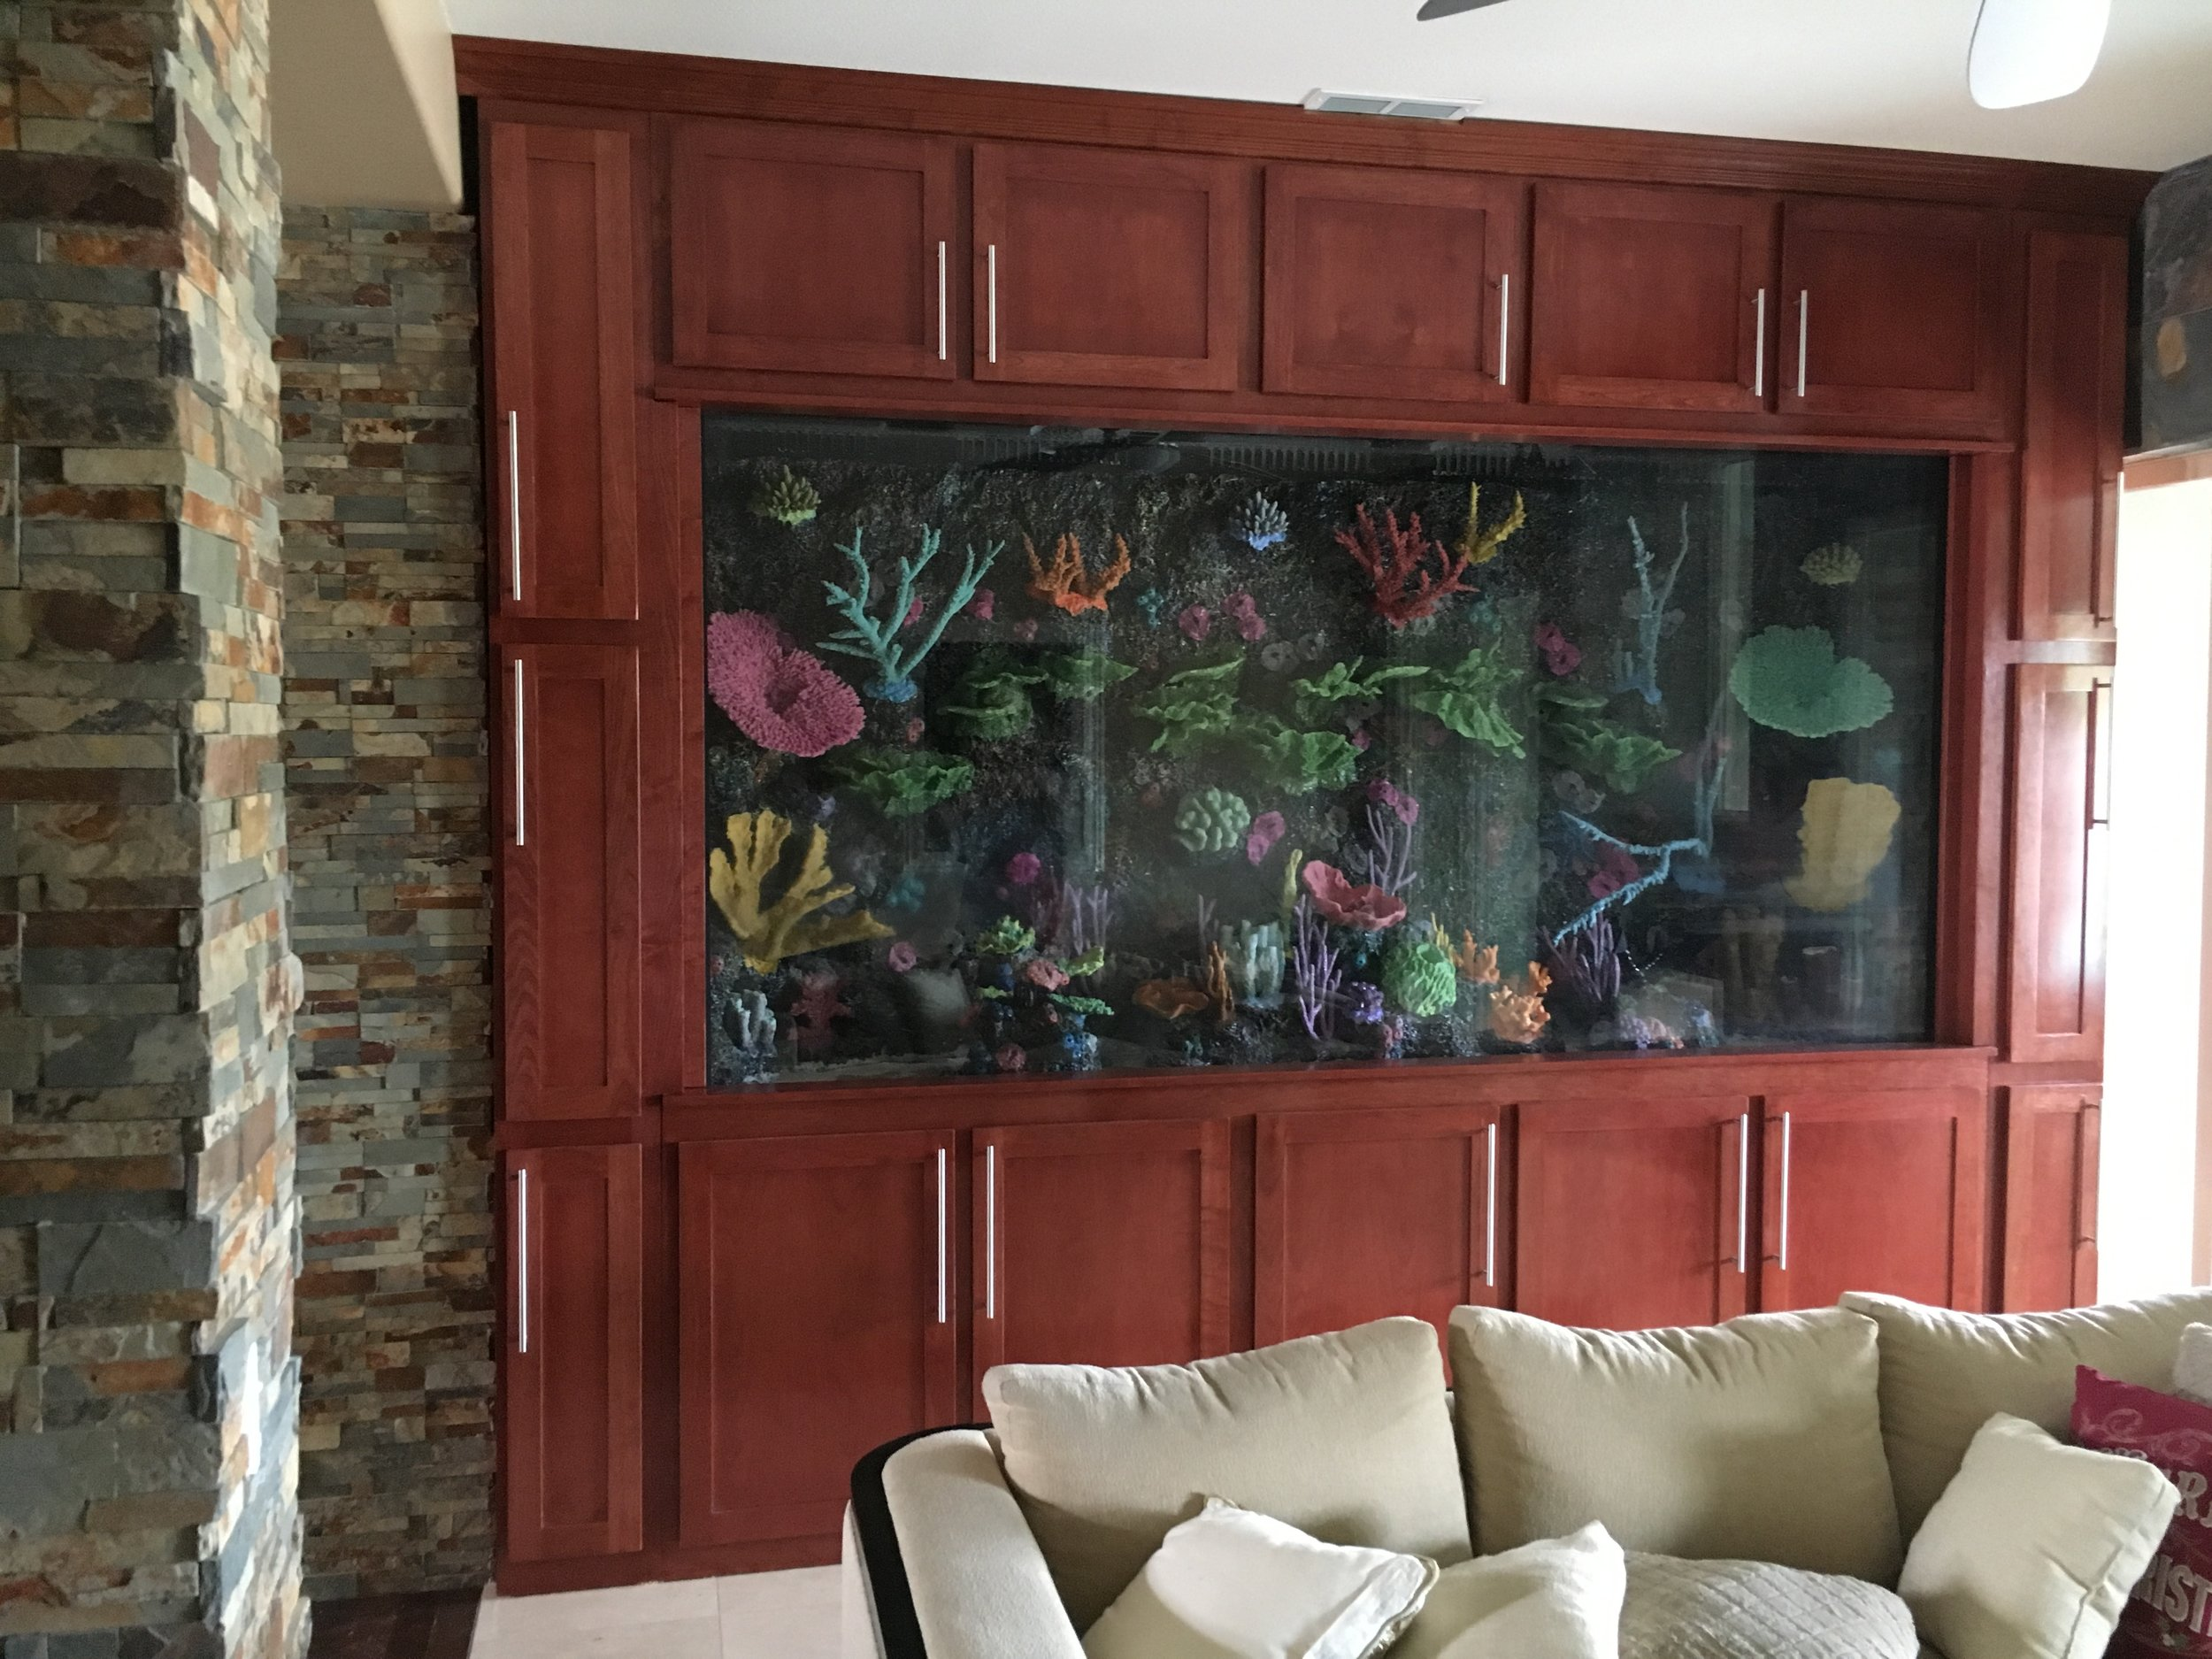 Perfect Color! - People have been complimenting the cabinetry surrounding the Fish tank nonstop since you designed it. The details are fantastic and the color matches the entire home's theme. You rock!!- Anthony, Casablanca Hotel and Casino